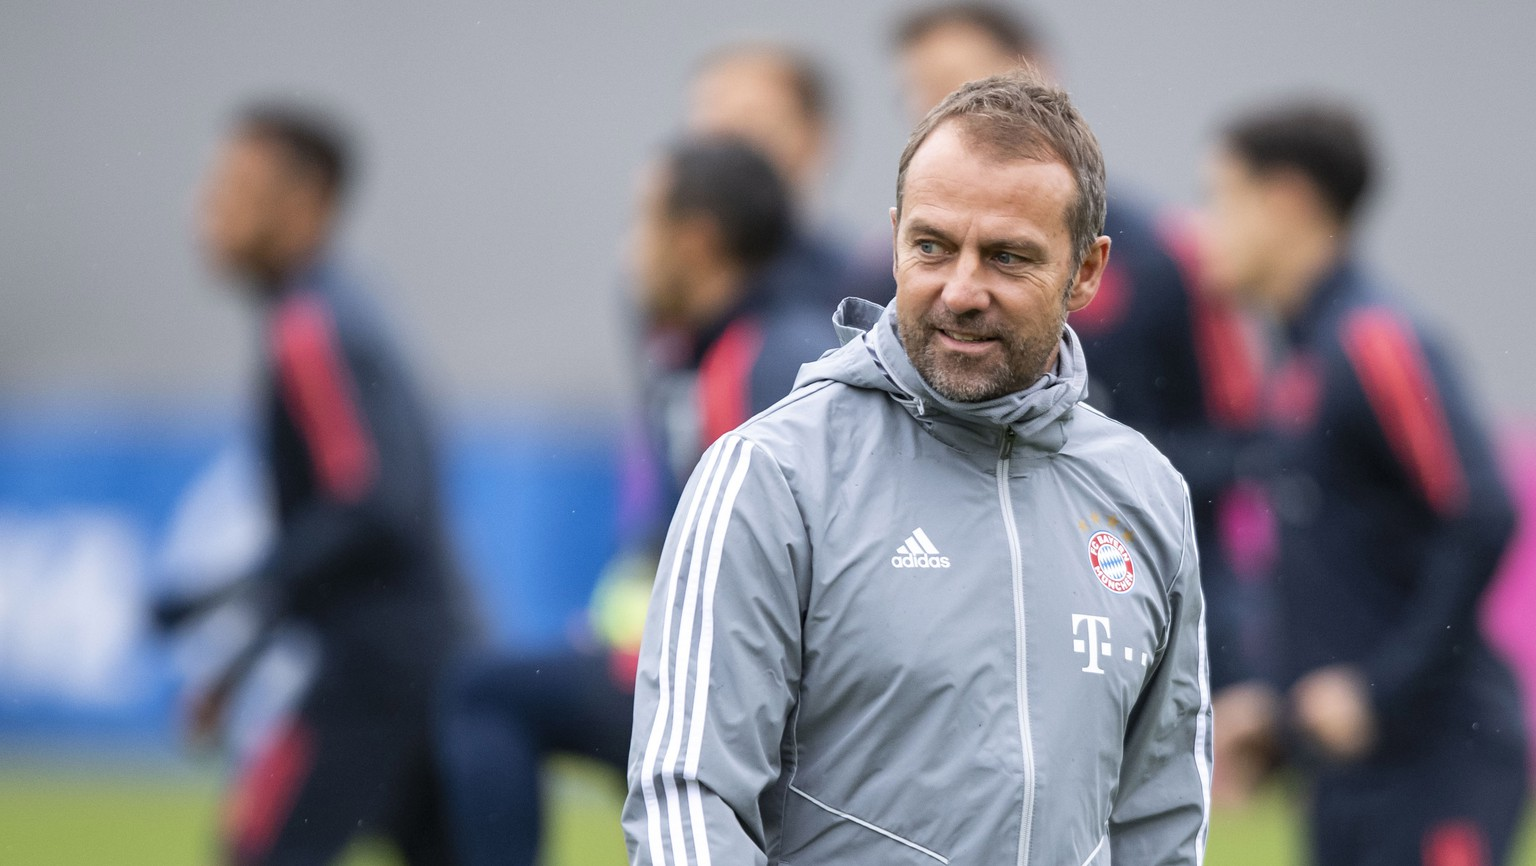 epa07973865 Bayern's interim coach Hansi Flick attends a training session at the Club's training ground in Munich, Germany, 05 November 2019. Bayern Munich will face Olympiacos Piraeus? in their UEFA Champions League group B soccer match on 06 November 2019.  EPA/LUKAS BARTH-TUTTAS